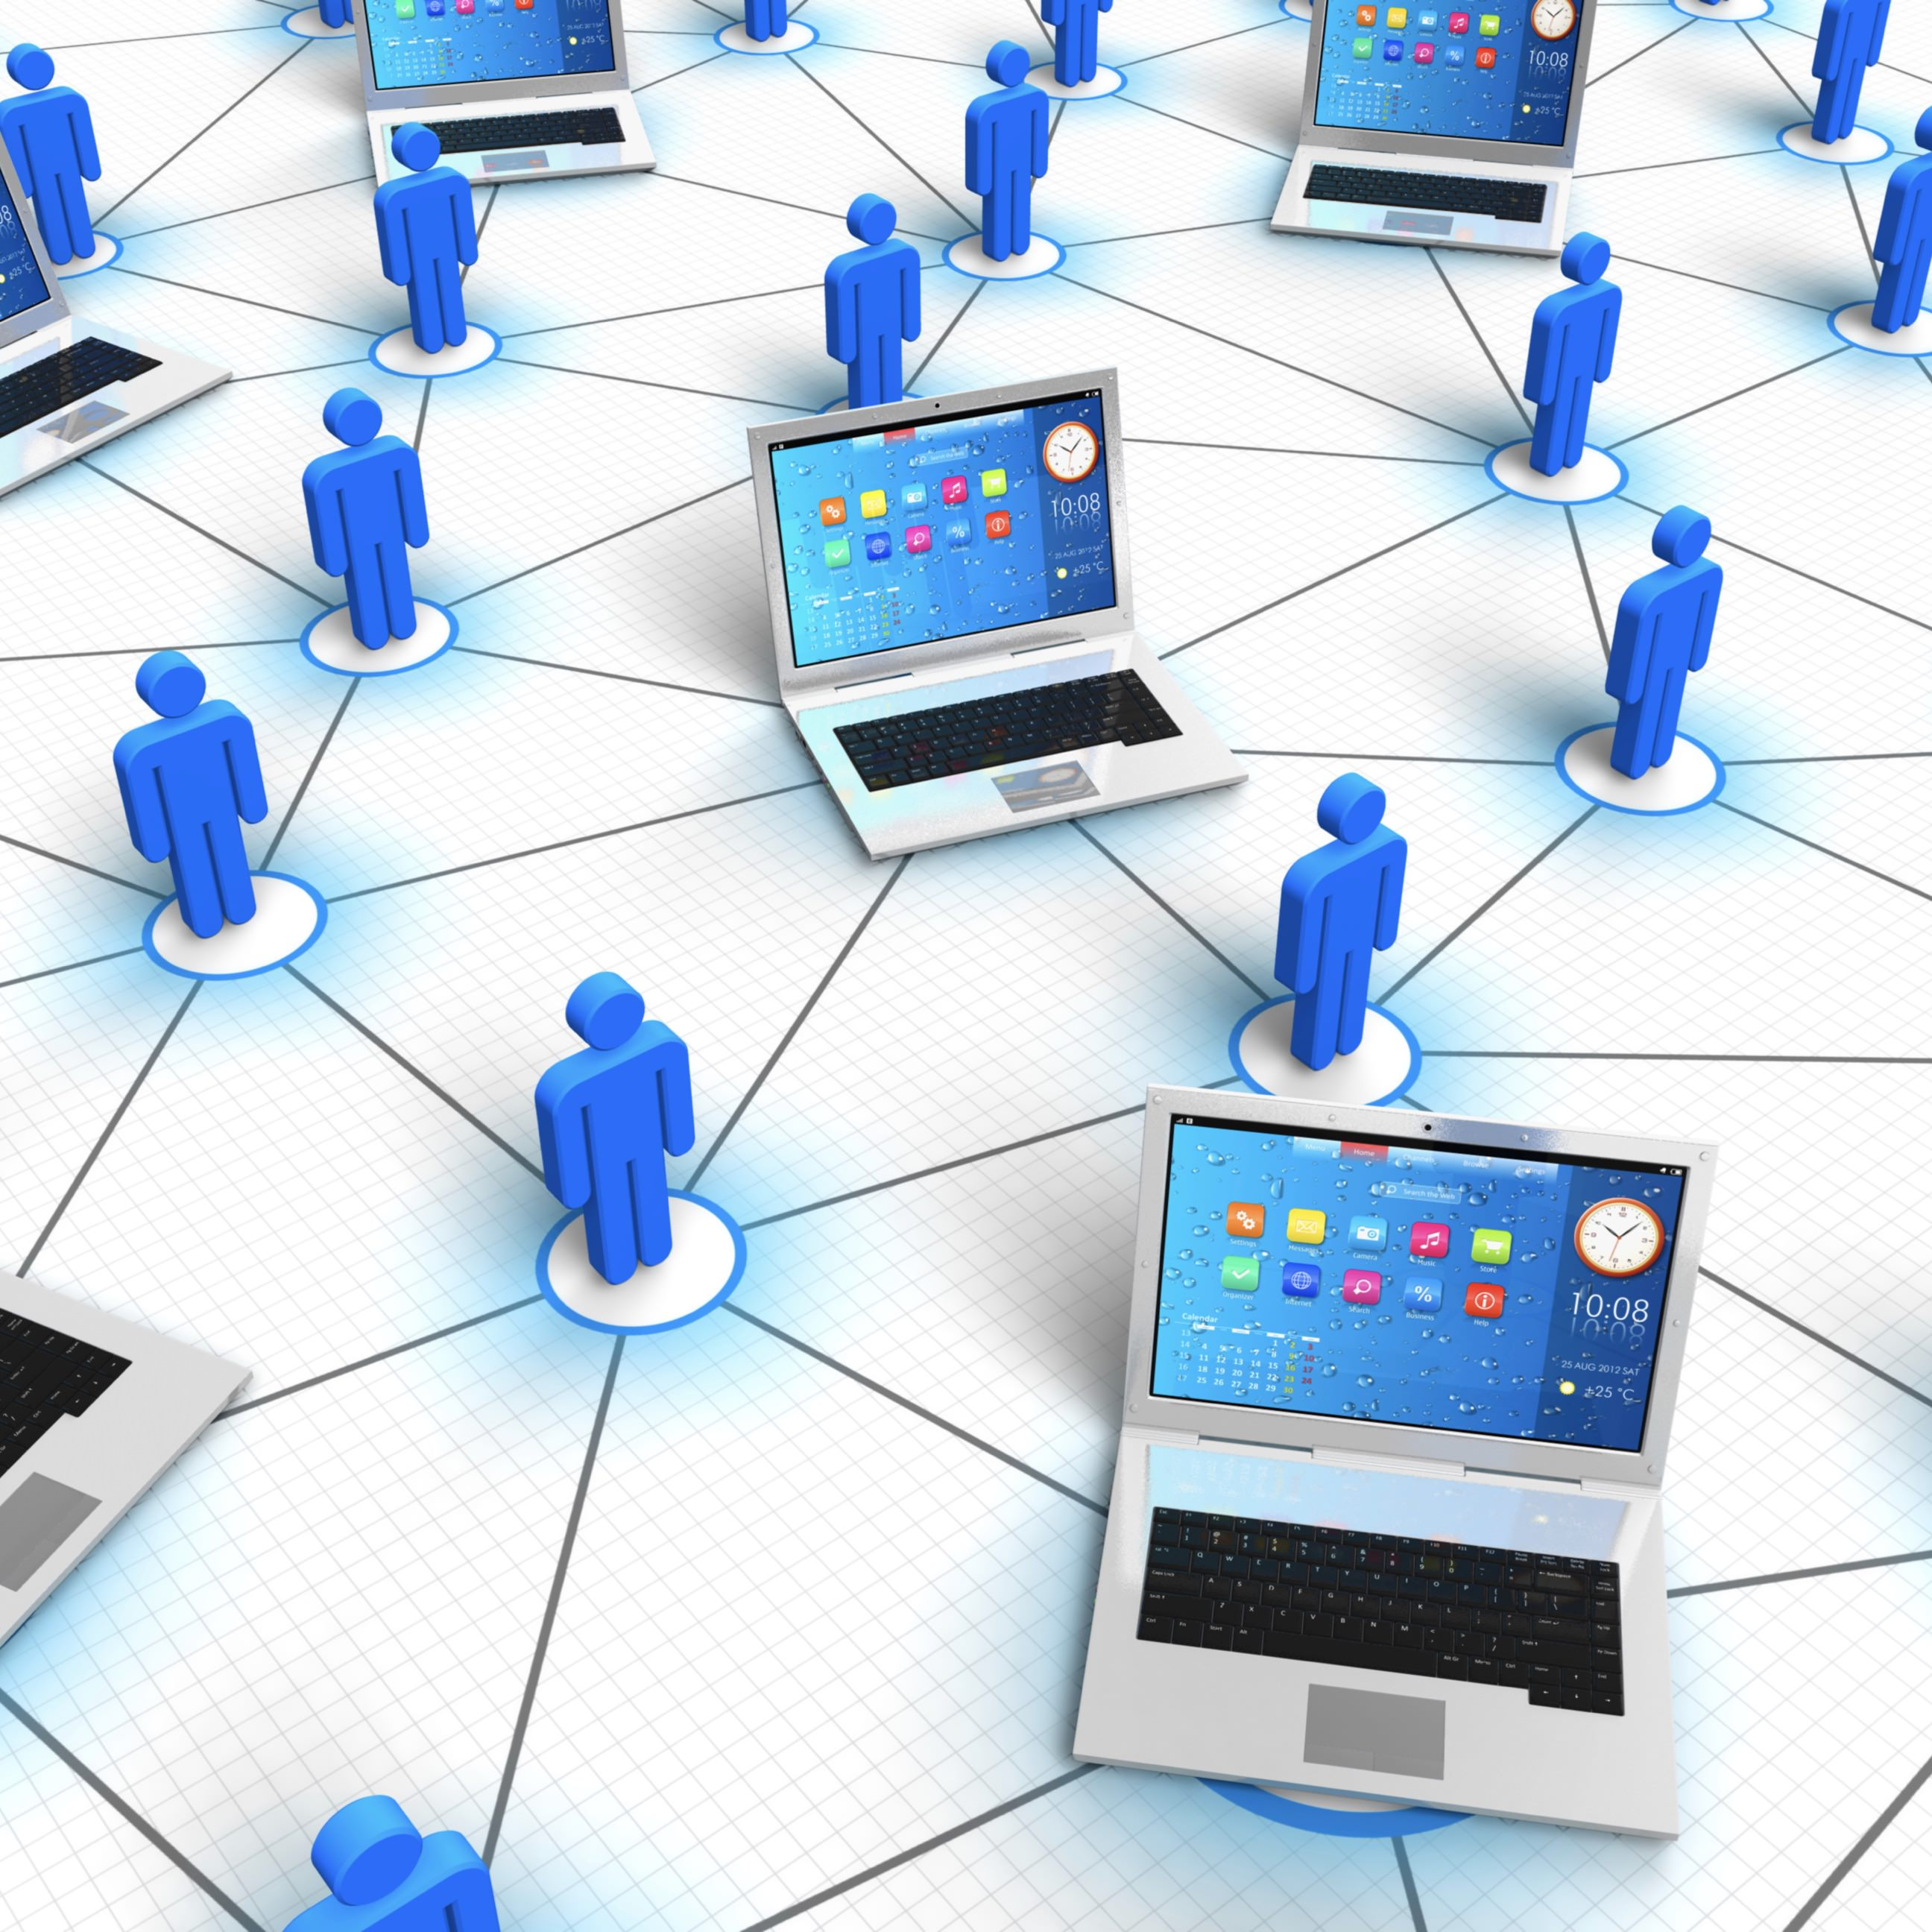 PC Cool Social Network